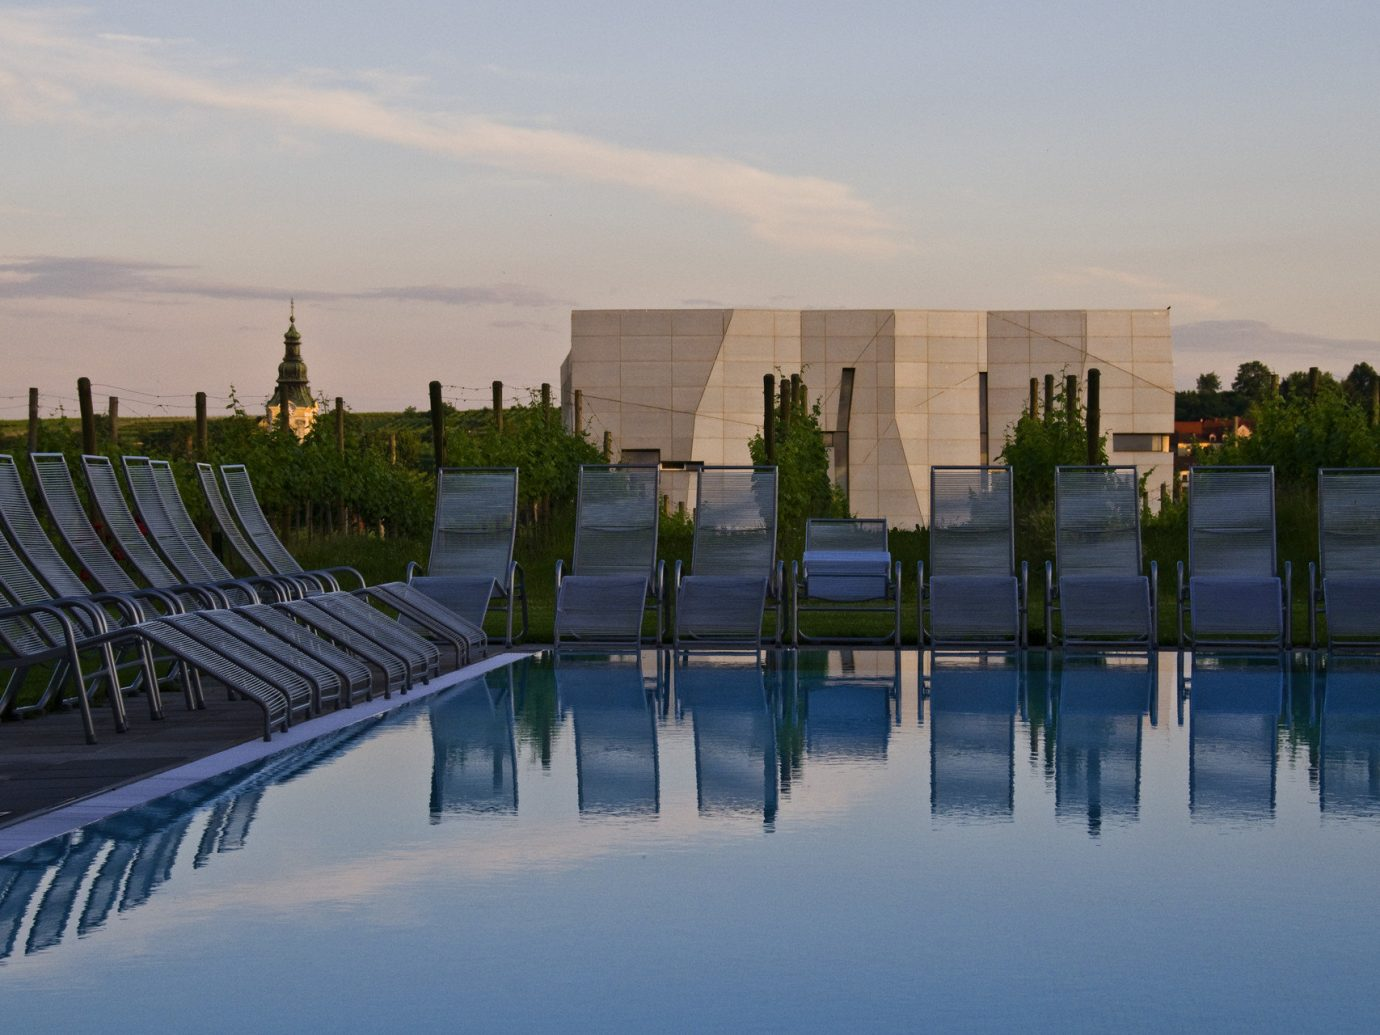 calm dawn dusk europe Health + Wellness Hotels lounge chairs outdoor pool Pool reflection serene Spa Retreats sky outdoor water horizon morning atmosphere of earth reflecting pool River evening overlooking sunlight skyline cityscape Lake reservoir day line